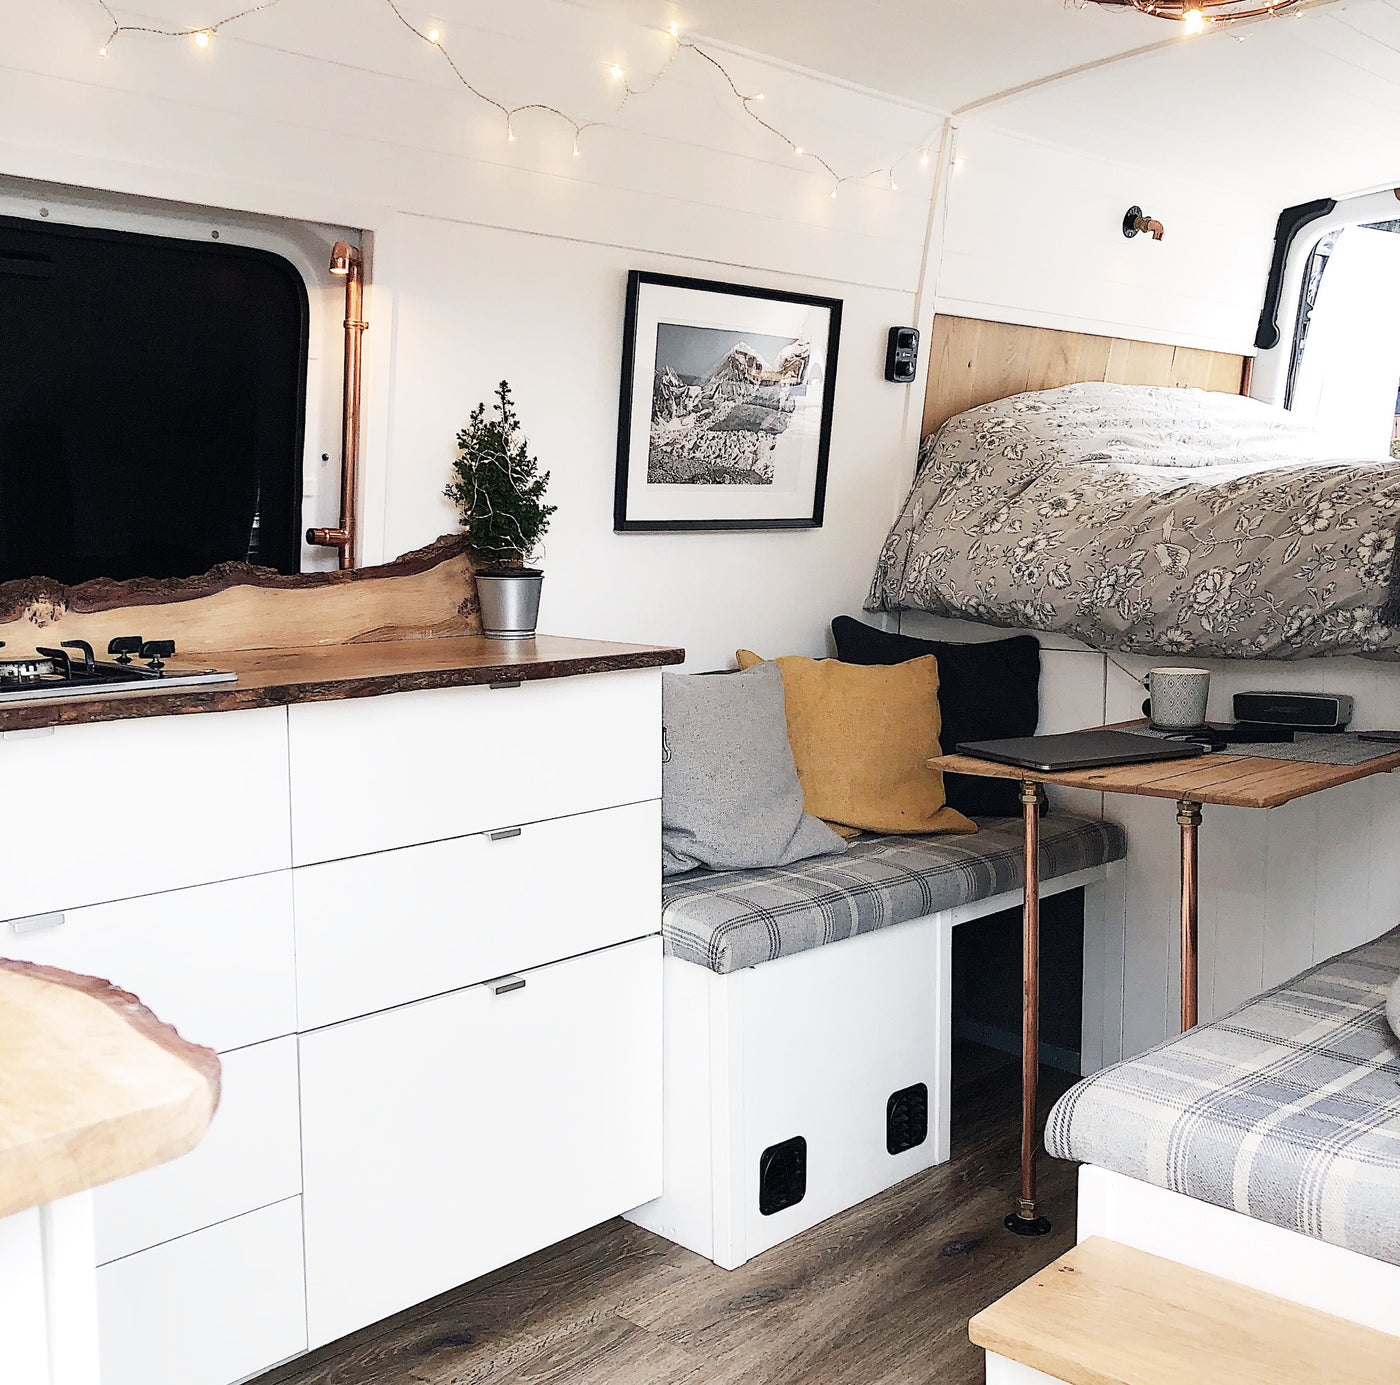 Campervan Conversion - How to Make A Van Into a Home